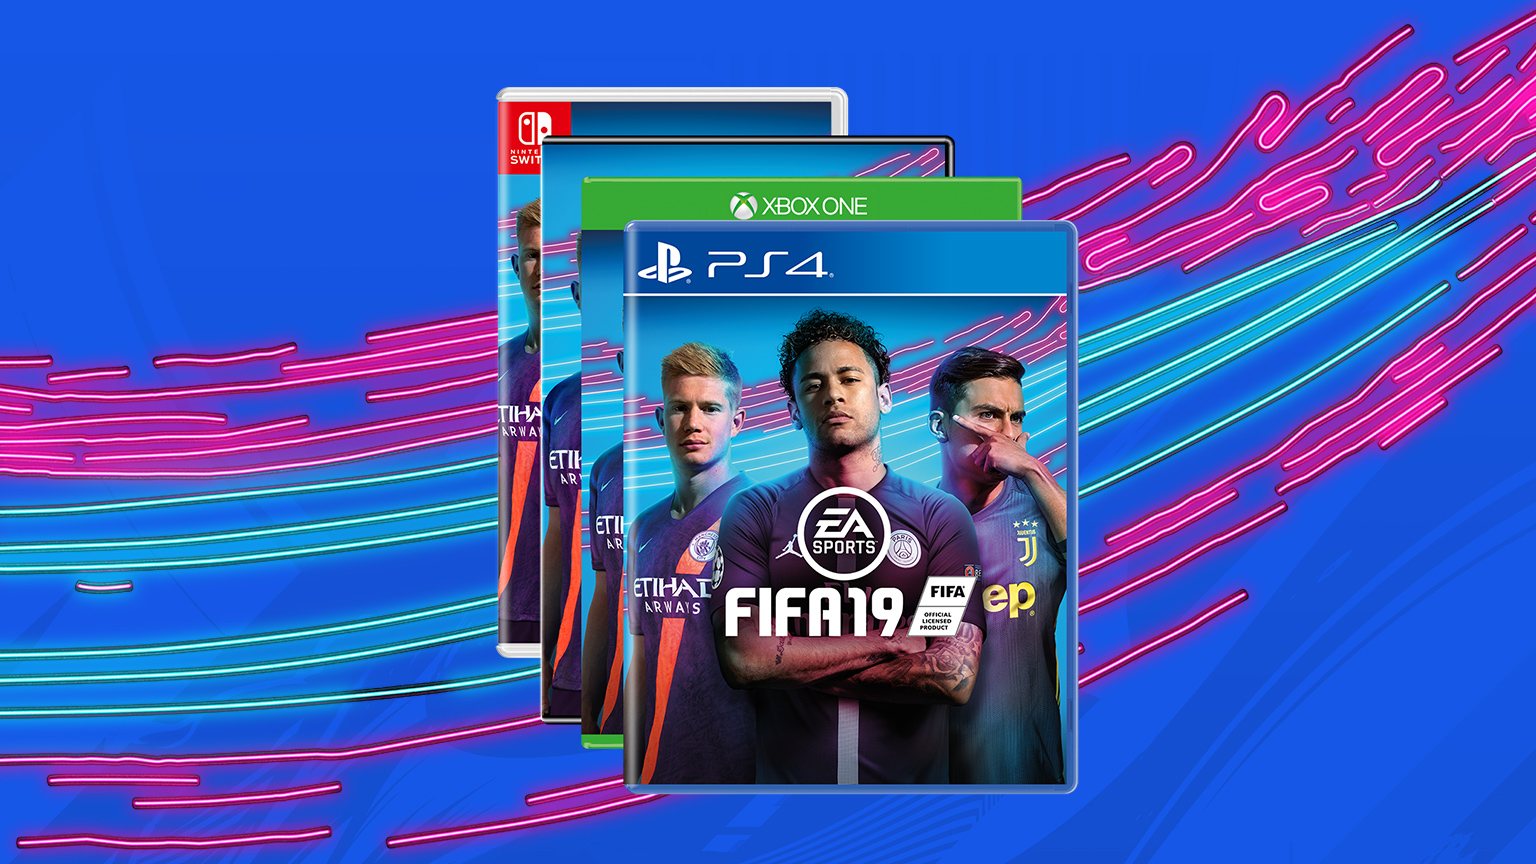 Buy Fifa 19 Soccer Video Game Ea Sports Official Site 18 Reg 3 Standard Edition